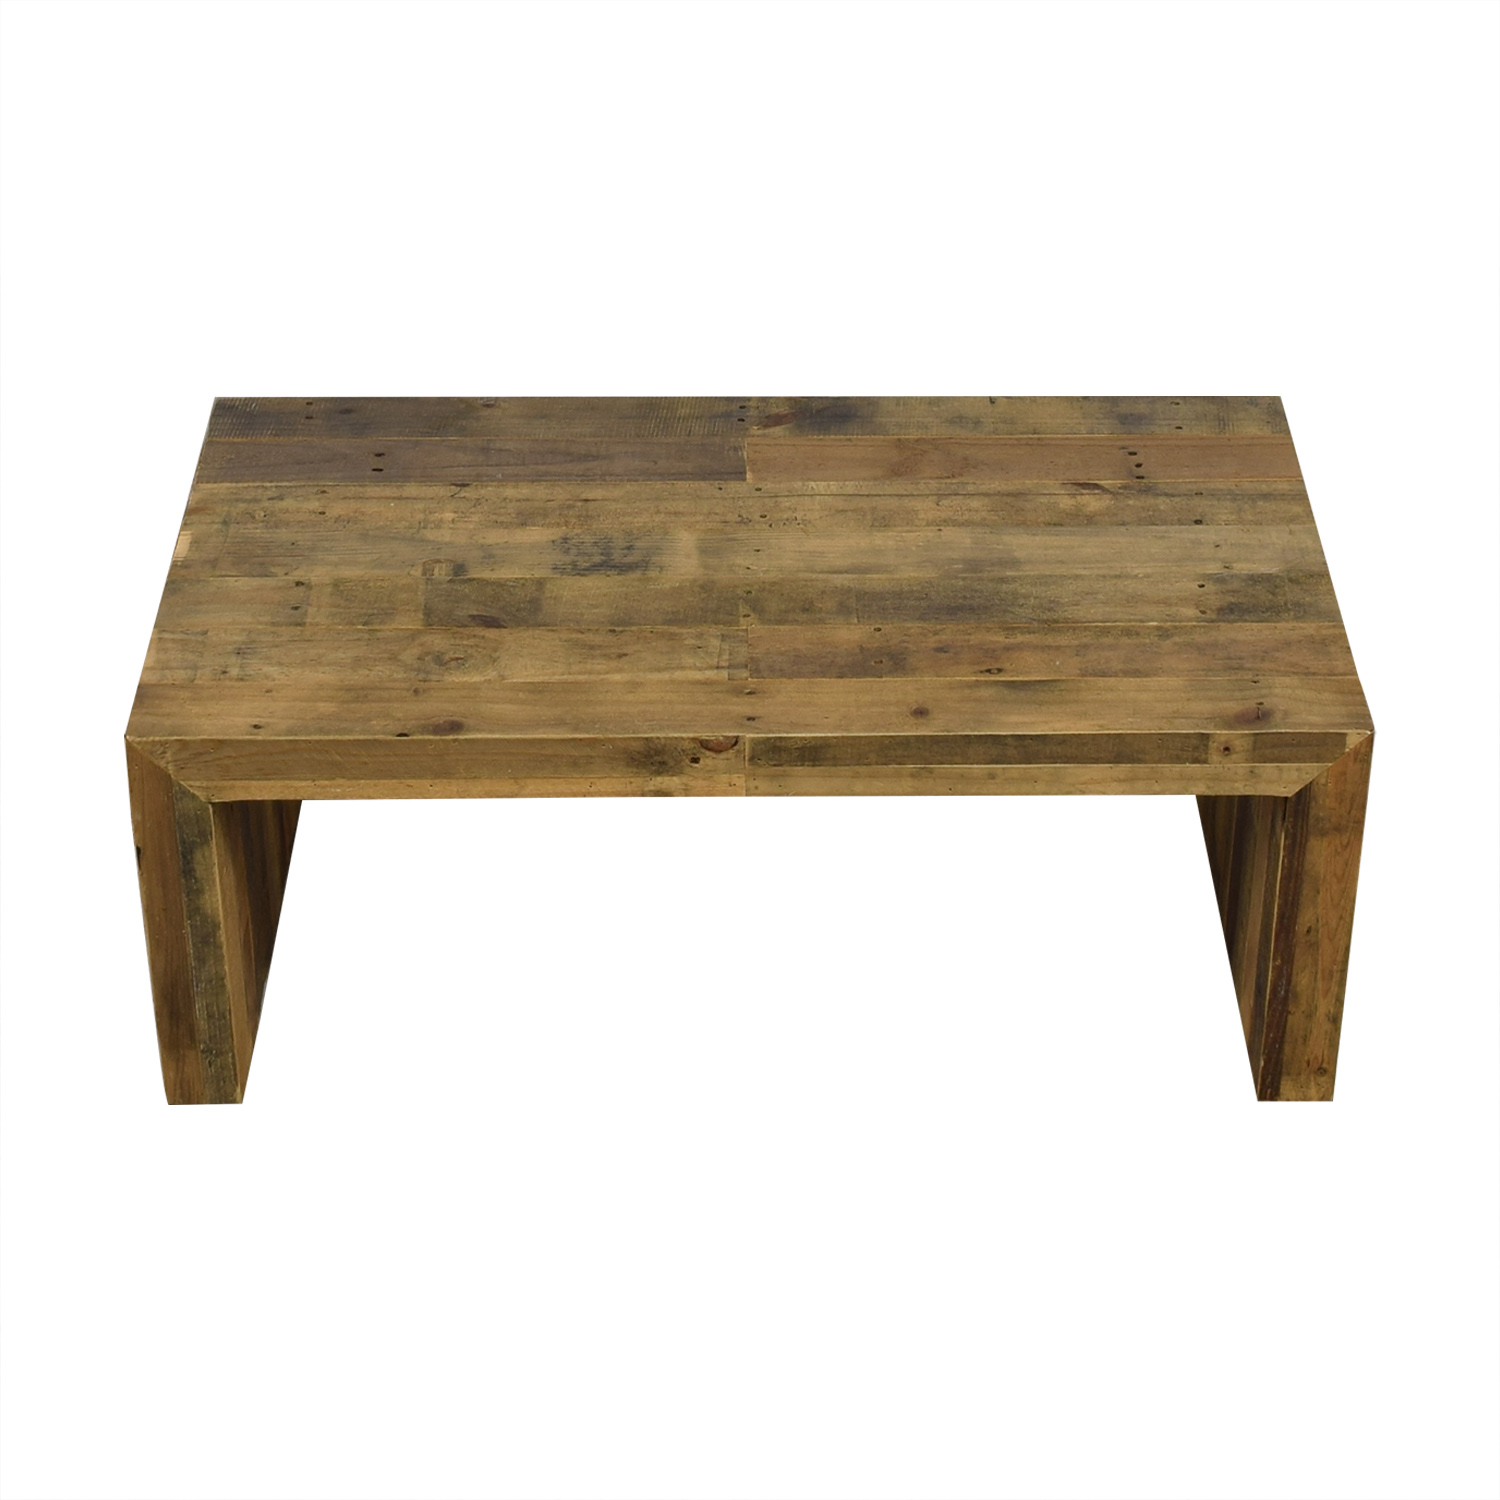 West Elm West Elm Emmerson Reclaimed Coffee Table price